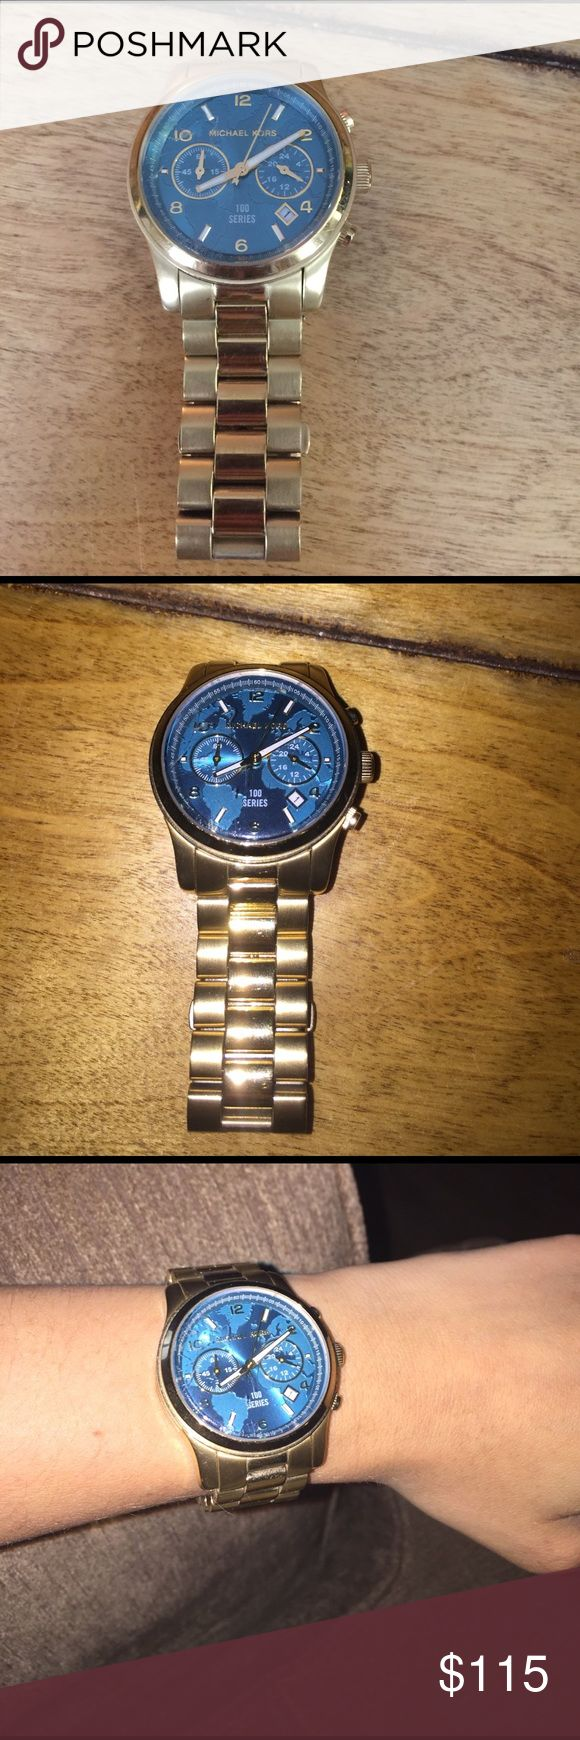 Michael Kors stop hunger watch In great condition! Was given an Apple Watch so am trying to sell my Michael kors' watches. Price is negotiable. The battery is dead but only costs $5 to replace at any jewelry store or department store KORS Michael Kors Accessories Watches